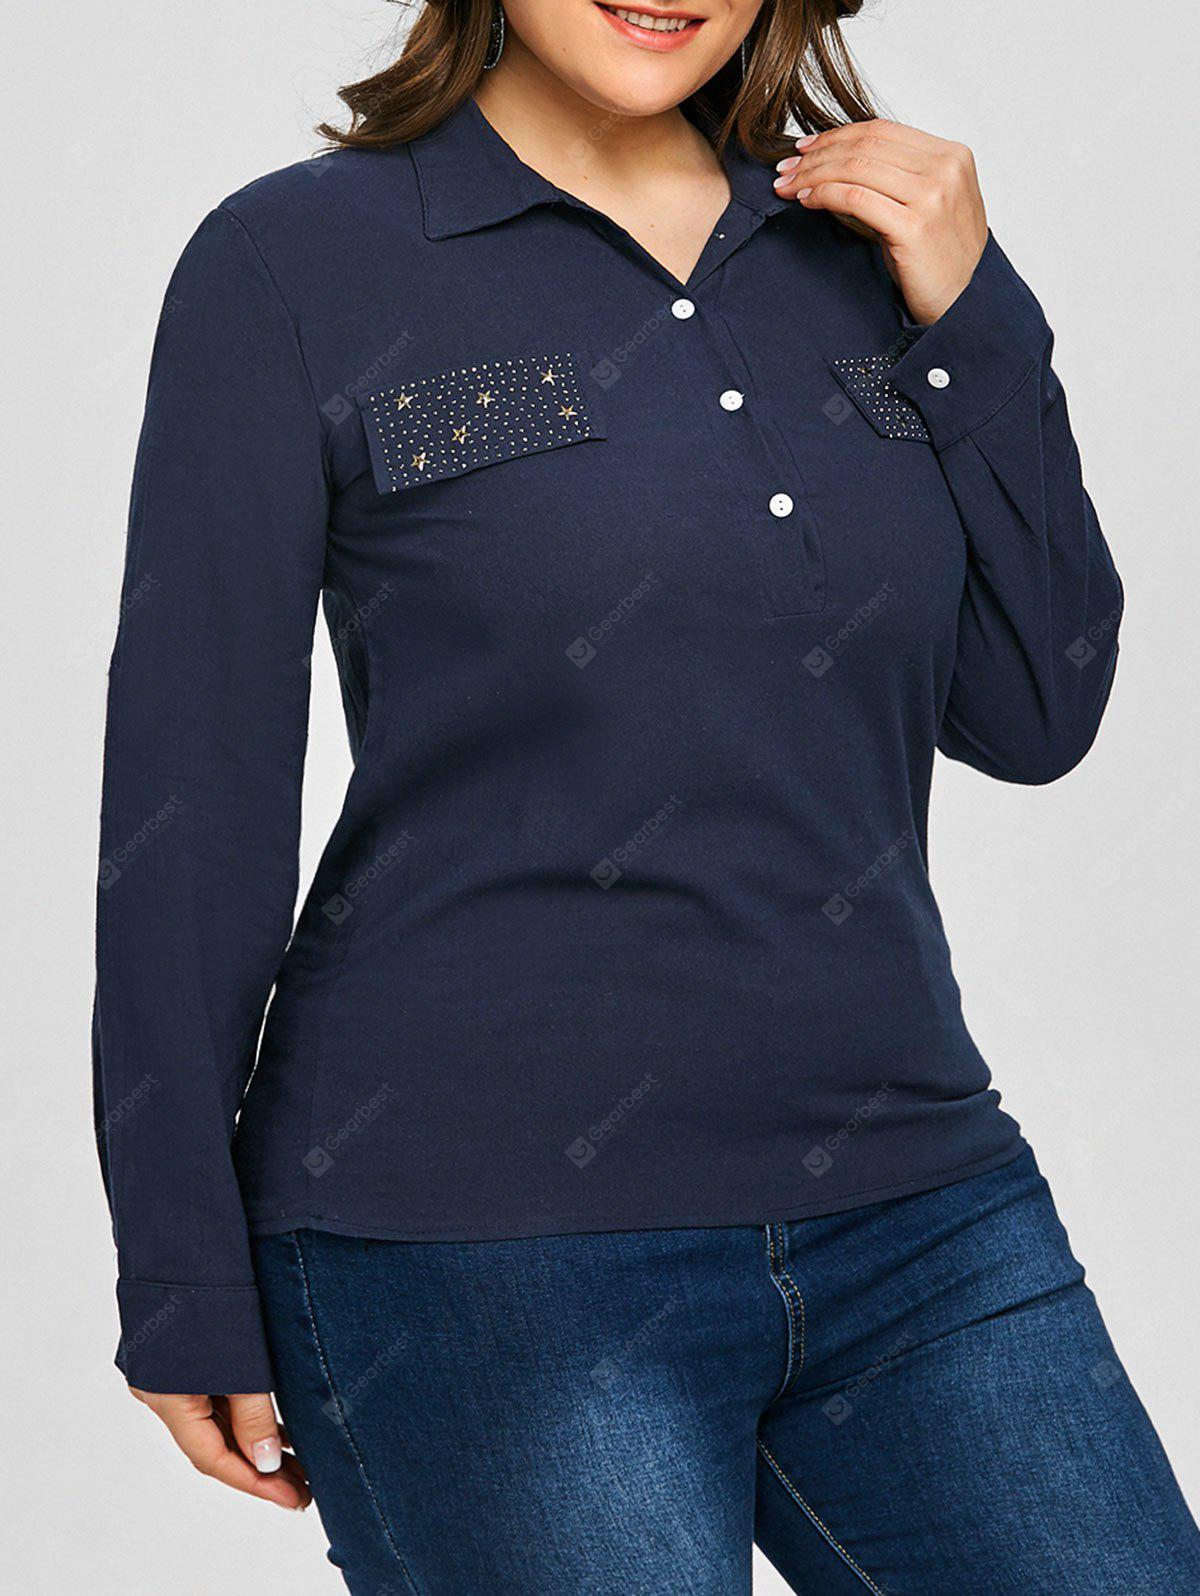 Plus Size Rivet Star Half Button Shirt